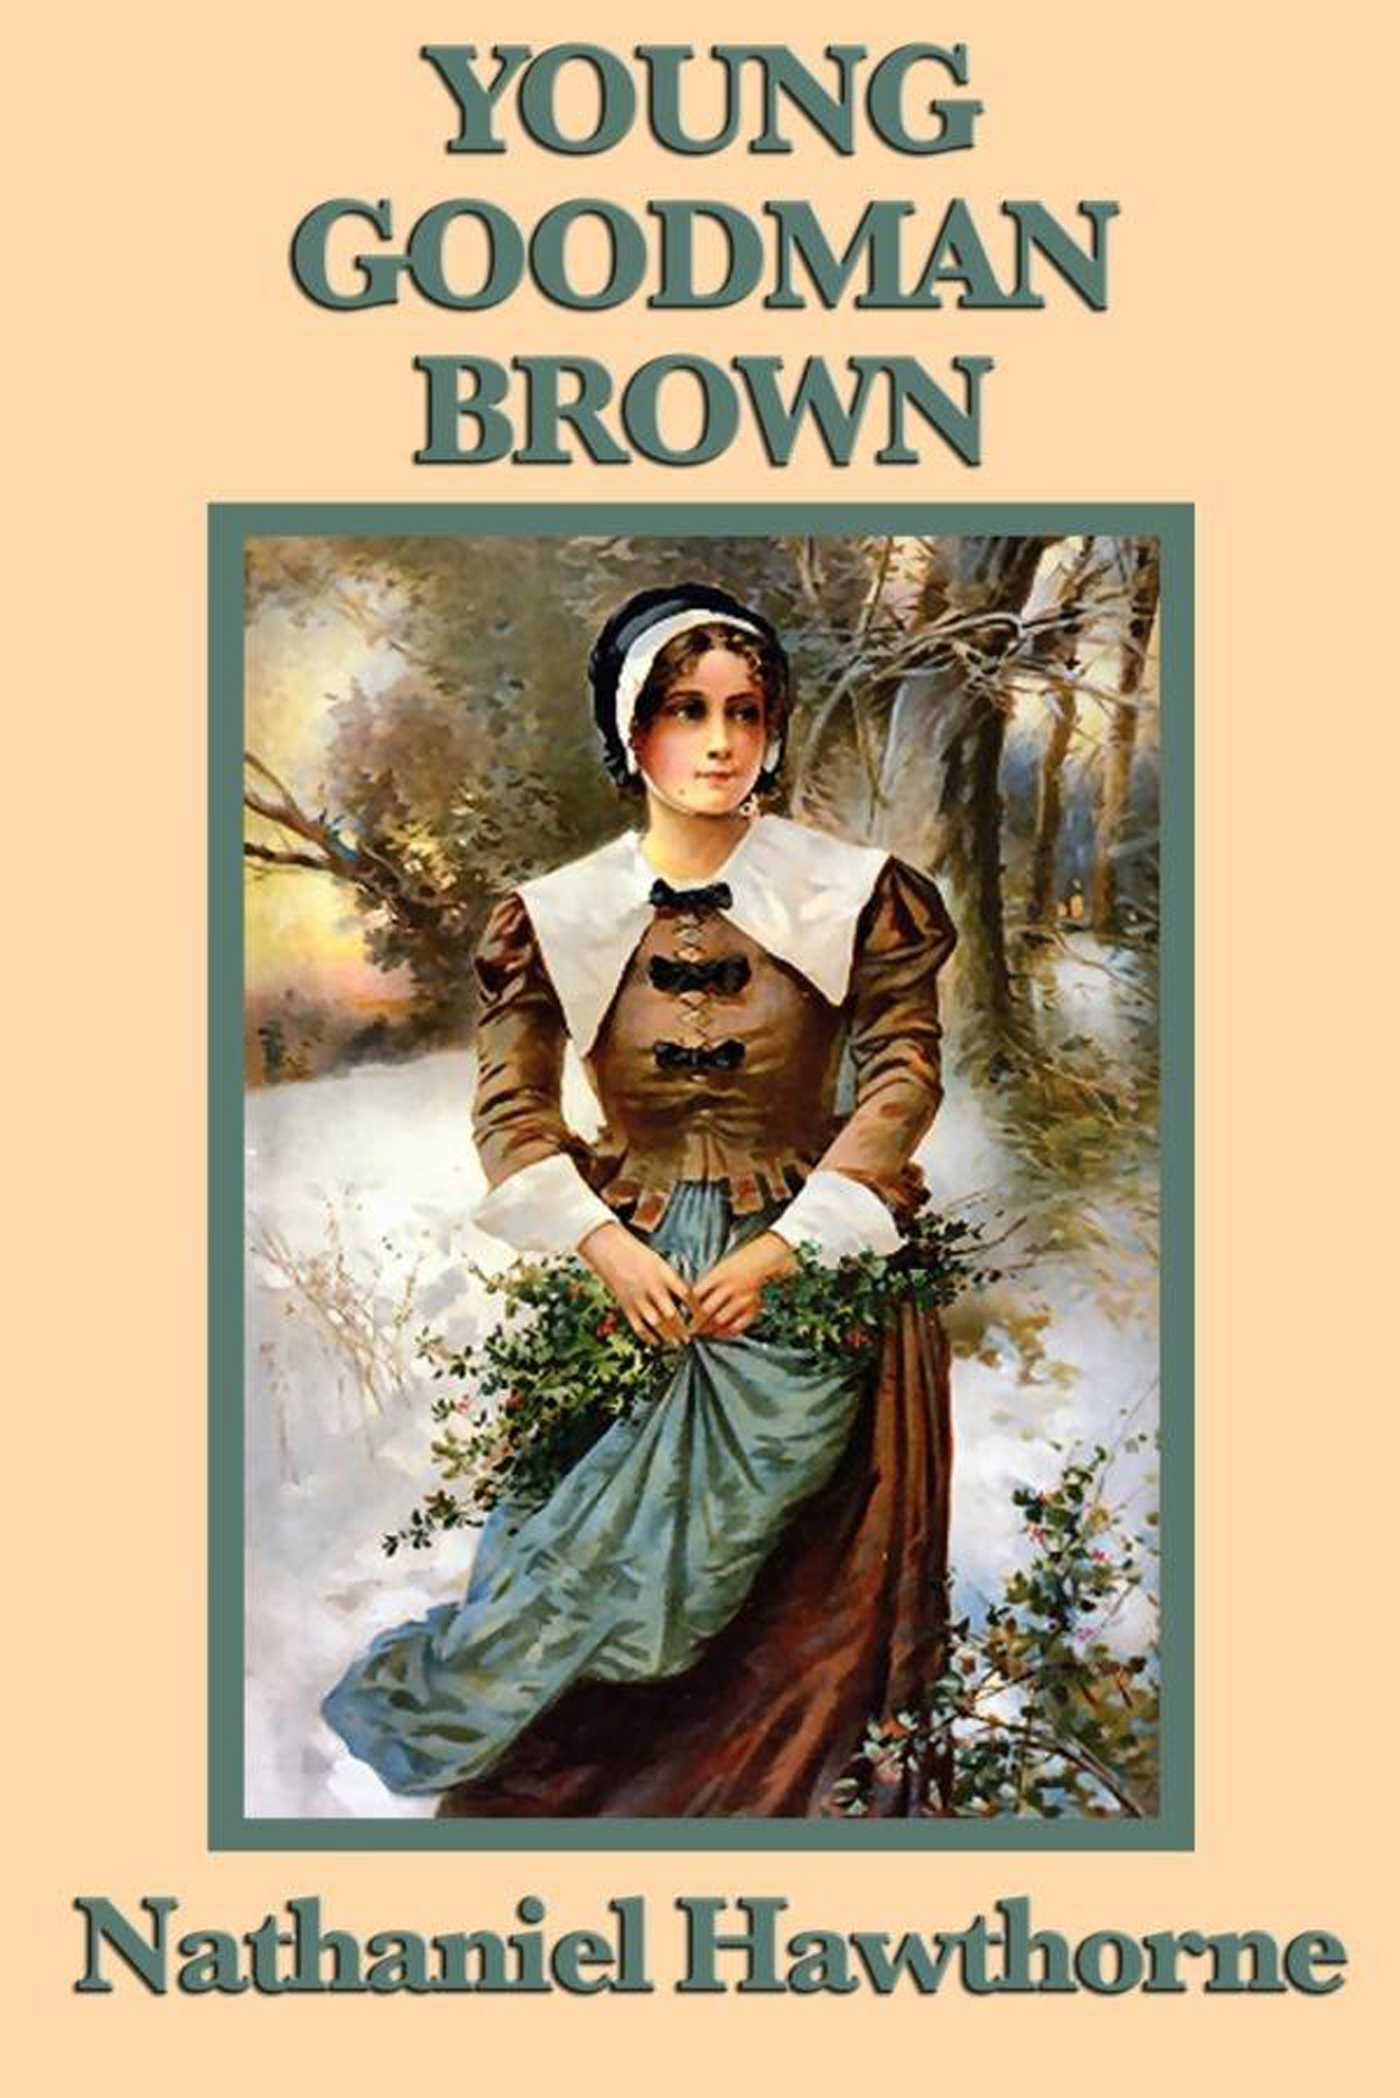 youn goodman brown Start studying young goodman brown learn vocabulary, terms and more with flashcards, games young goodman brown identify the speaker of the quote:  'my father never went into the woods on.